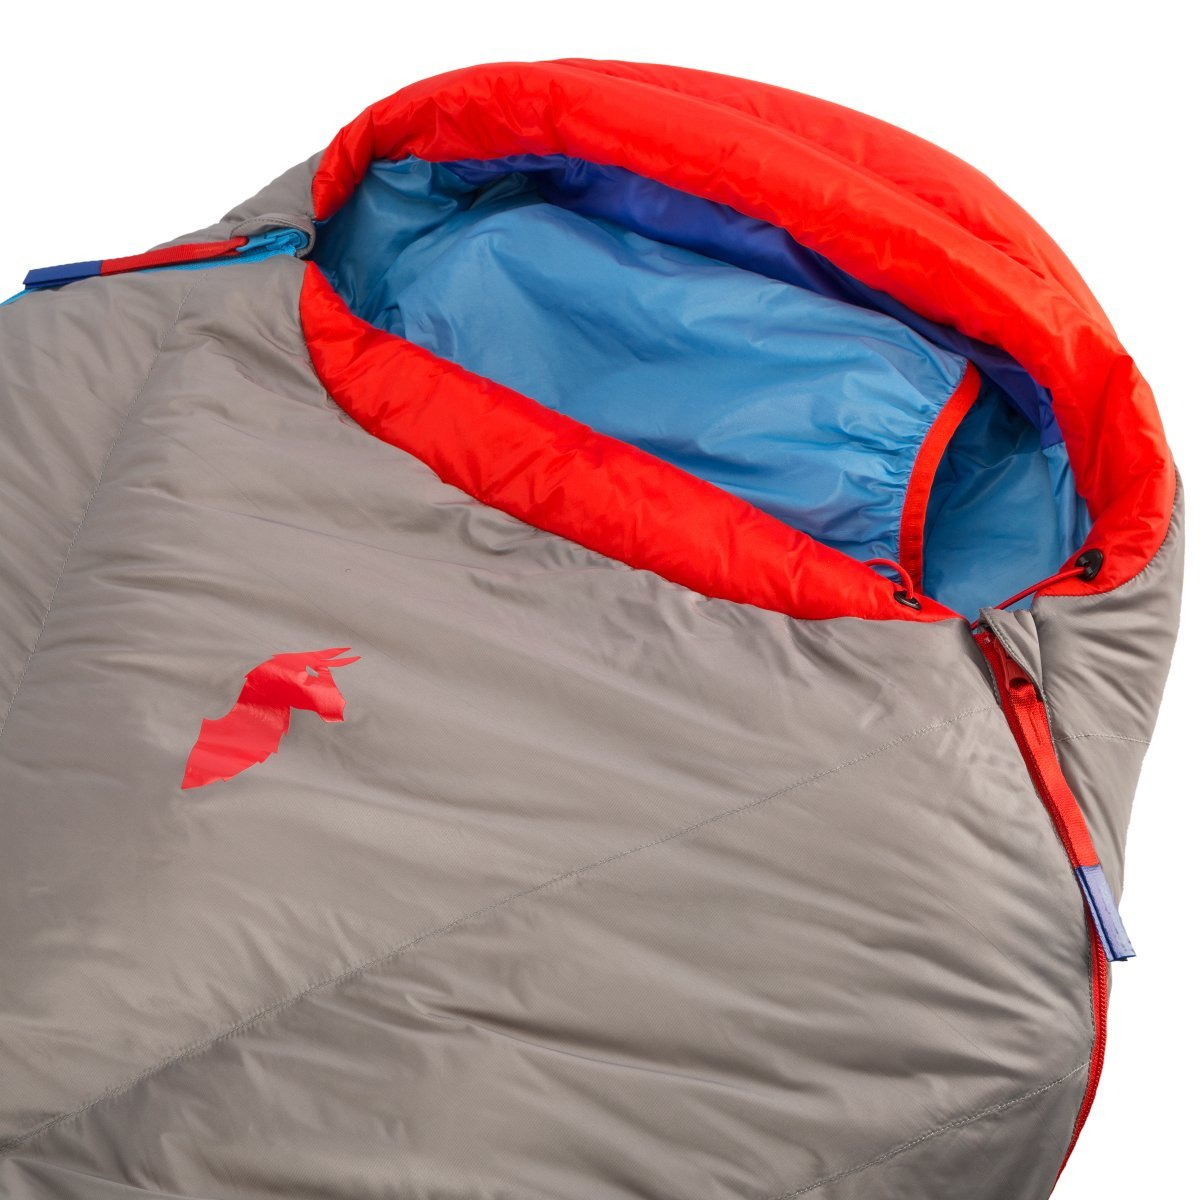 Astounding Sueno Sleeping Bag Lamtechconsult Wood Chair Design Ideas Lamtechconsultcom